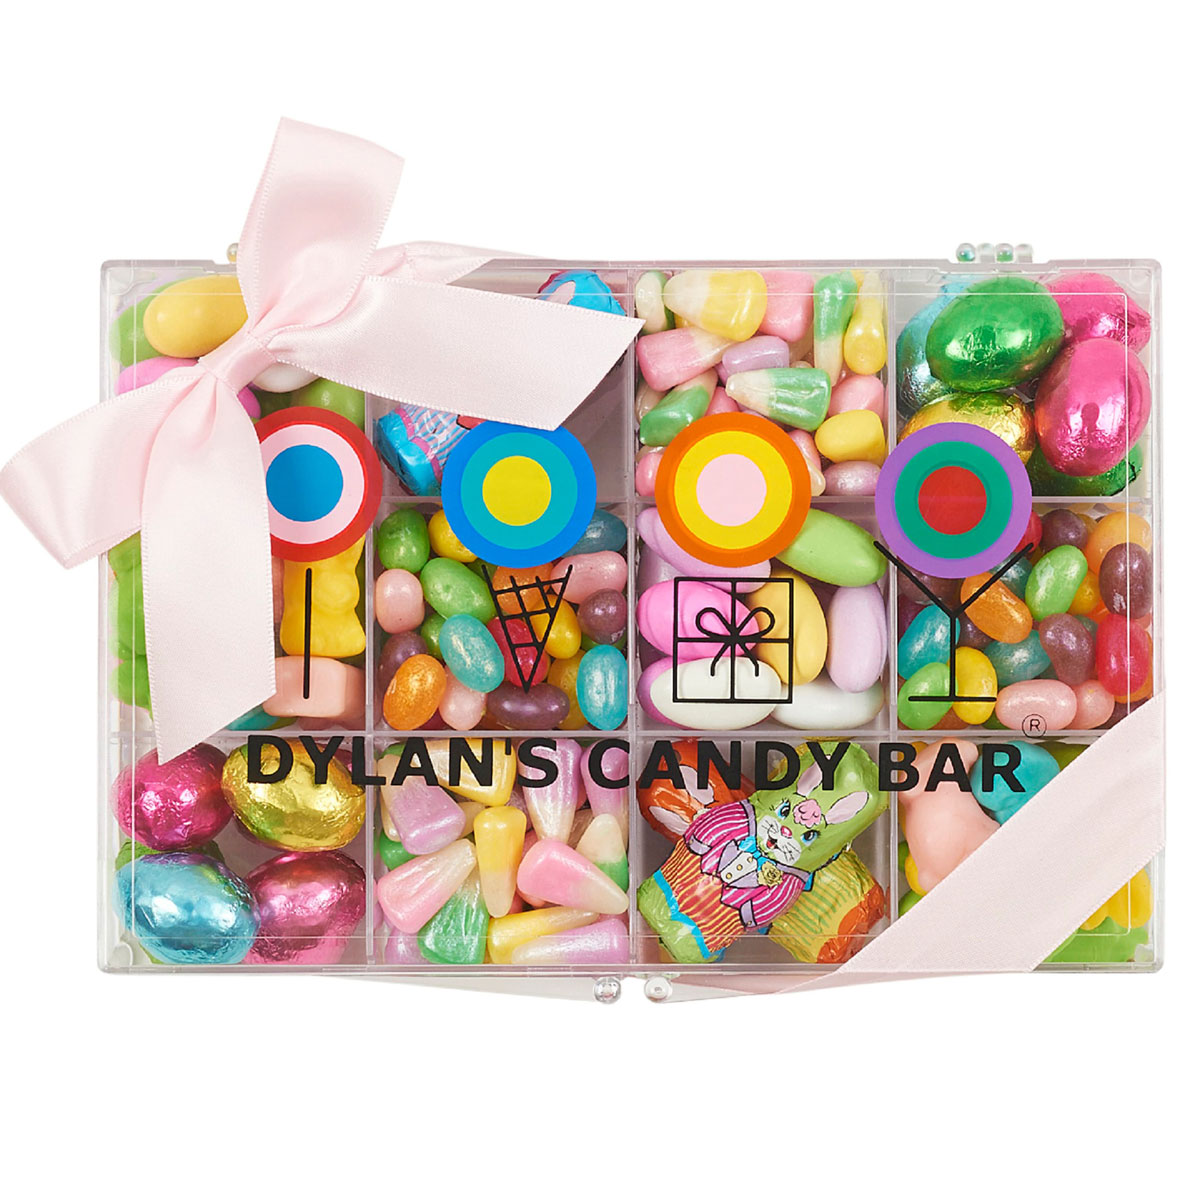 Dylan's candy bar easter candy box